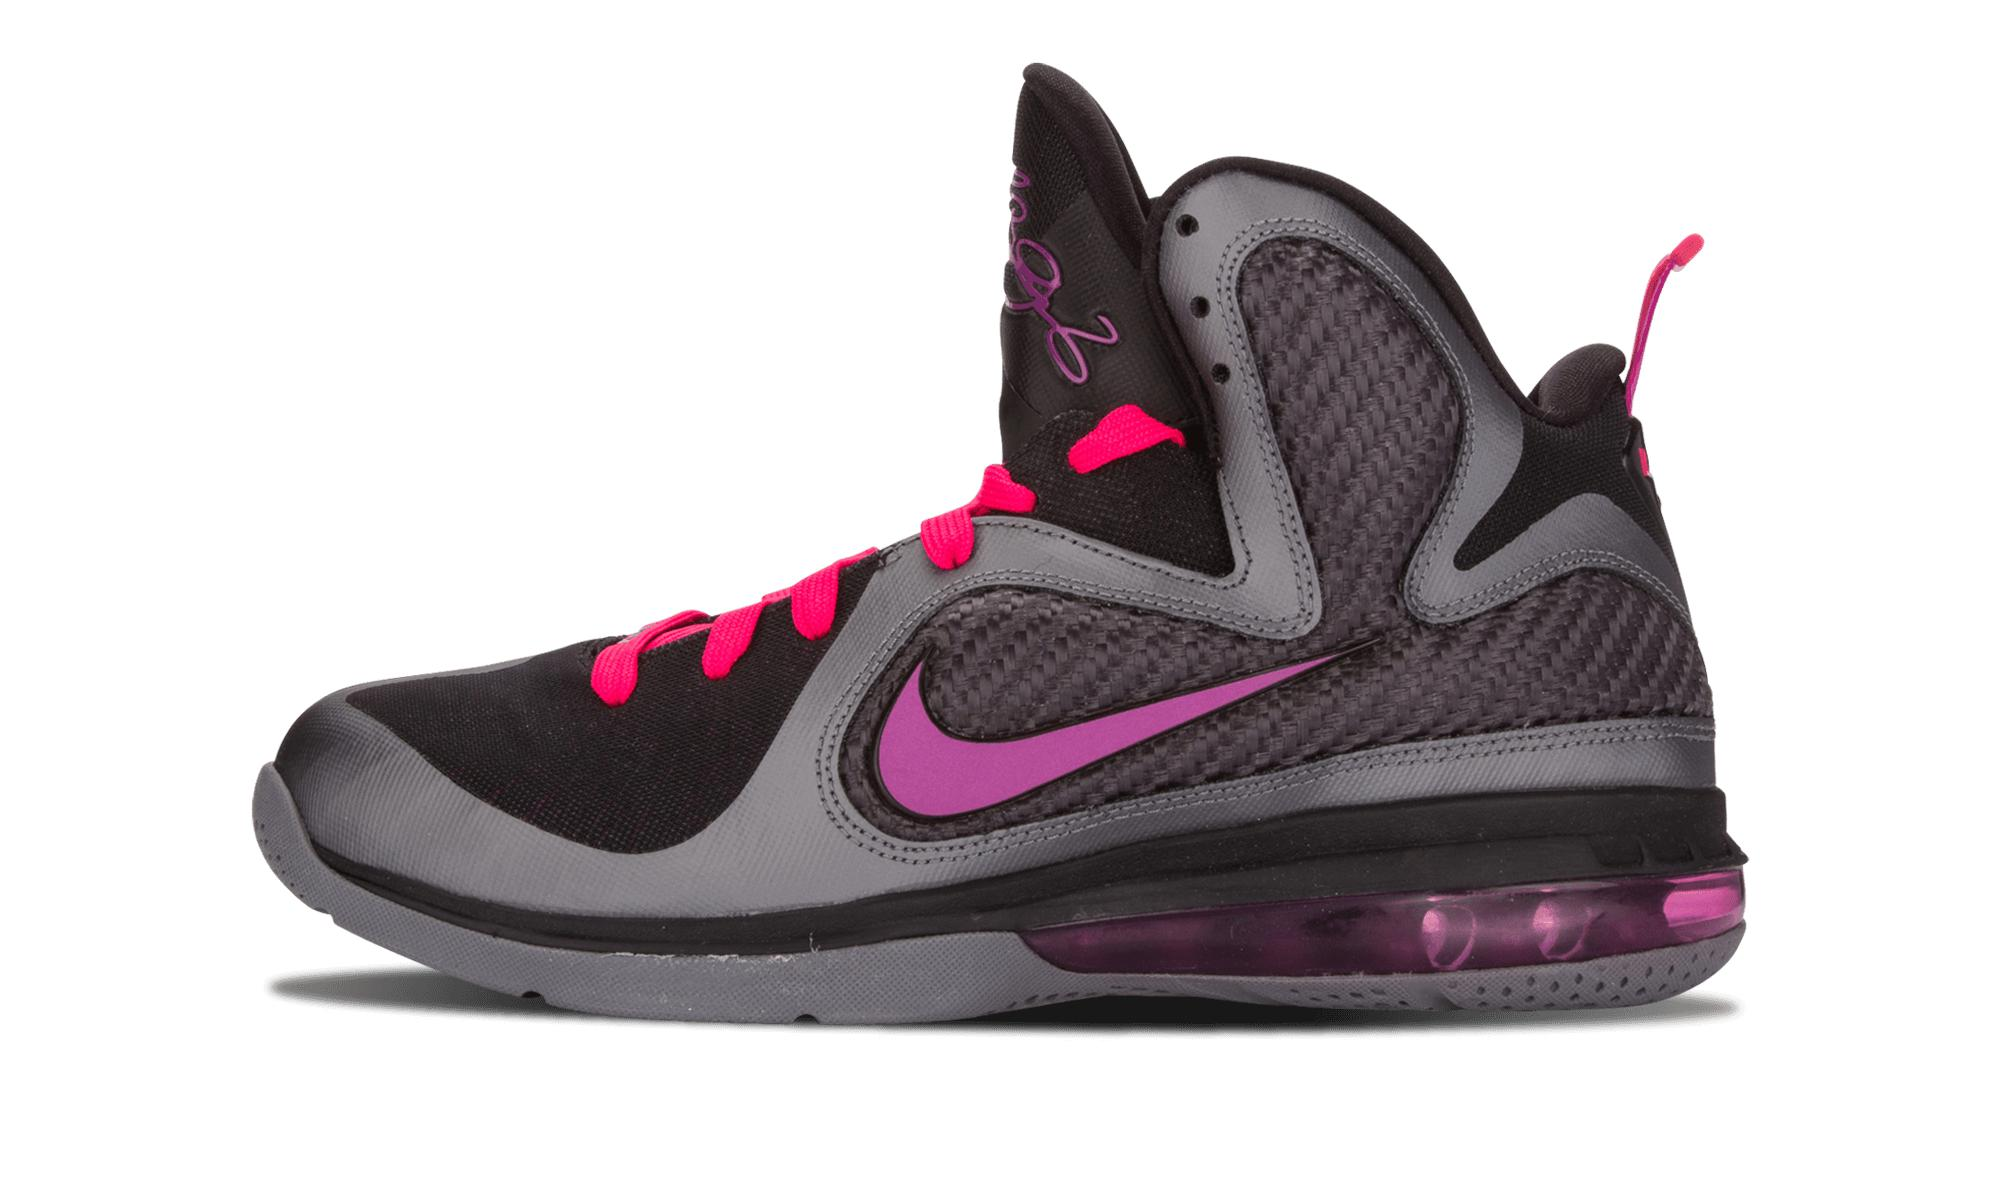 521b828eaf6 Nike Lebron 9 in Gray for Men - Save 5% - Lyst